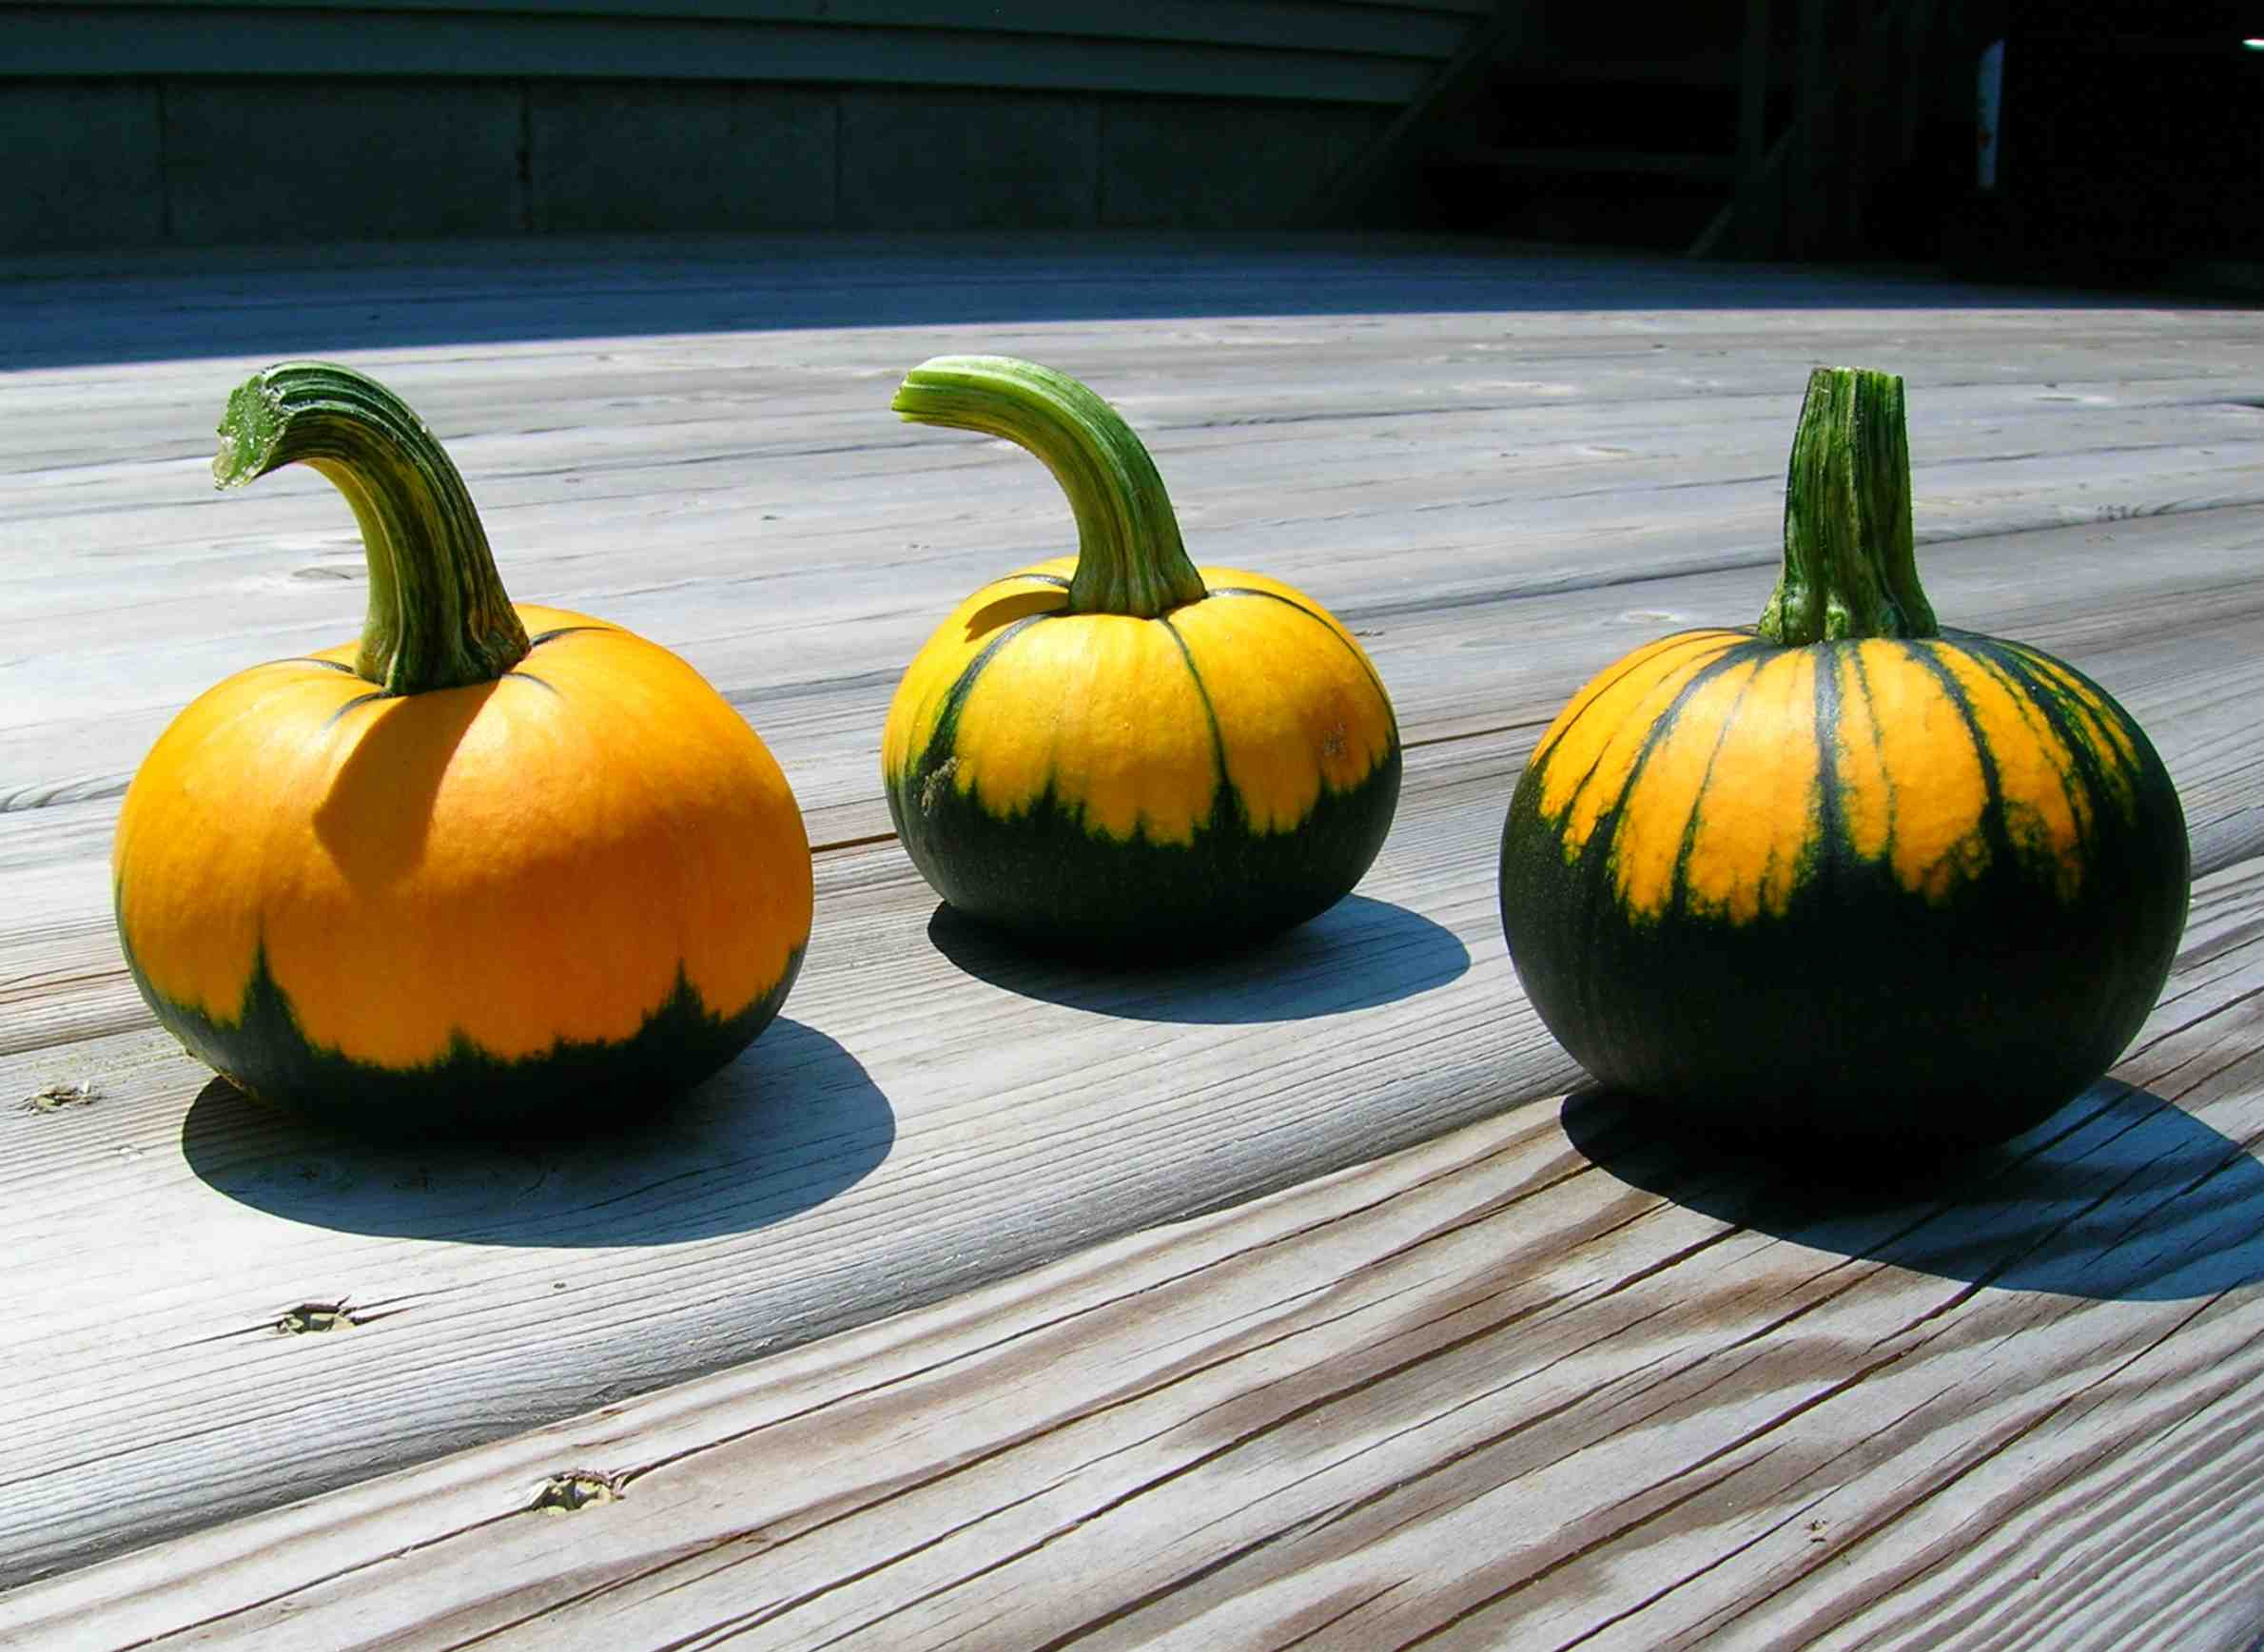 gardening-autumn-harvest-produce-pumpkins.jpg